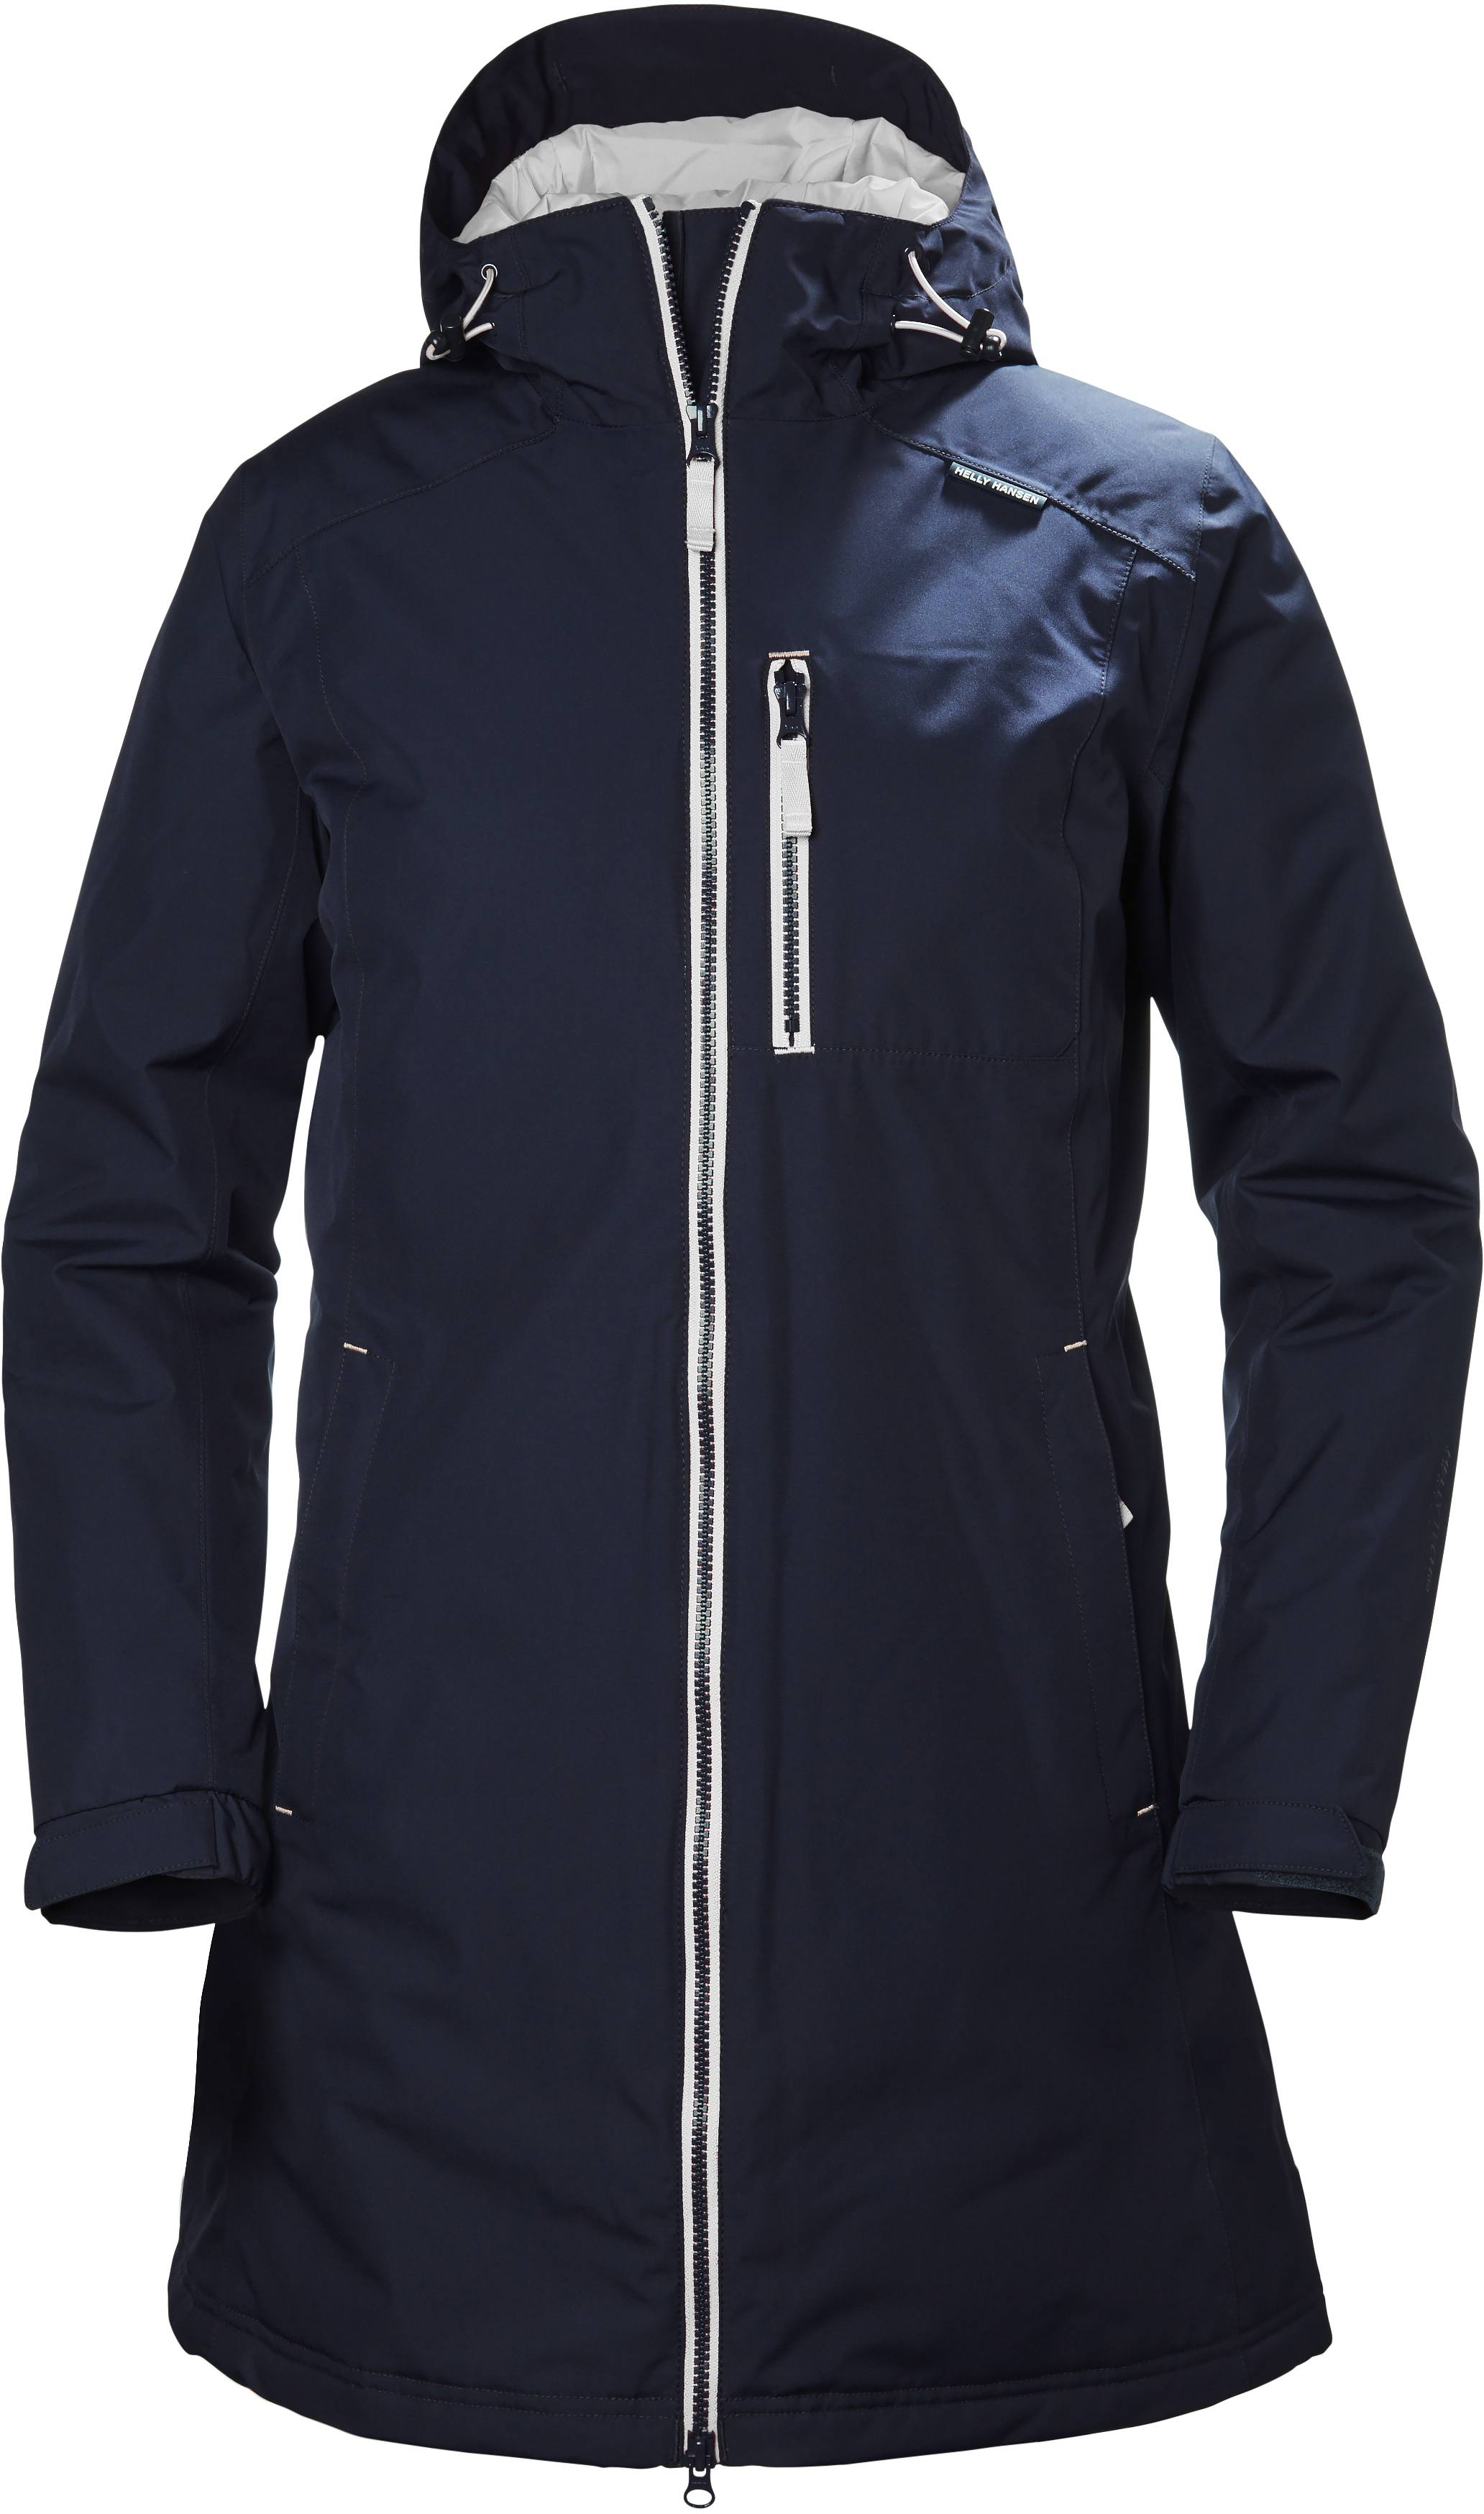 ed30191f5c Helly Hansen Women S Long Belfast Winter Jacket. Full image ...